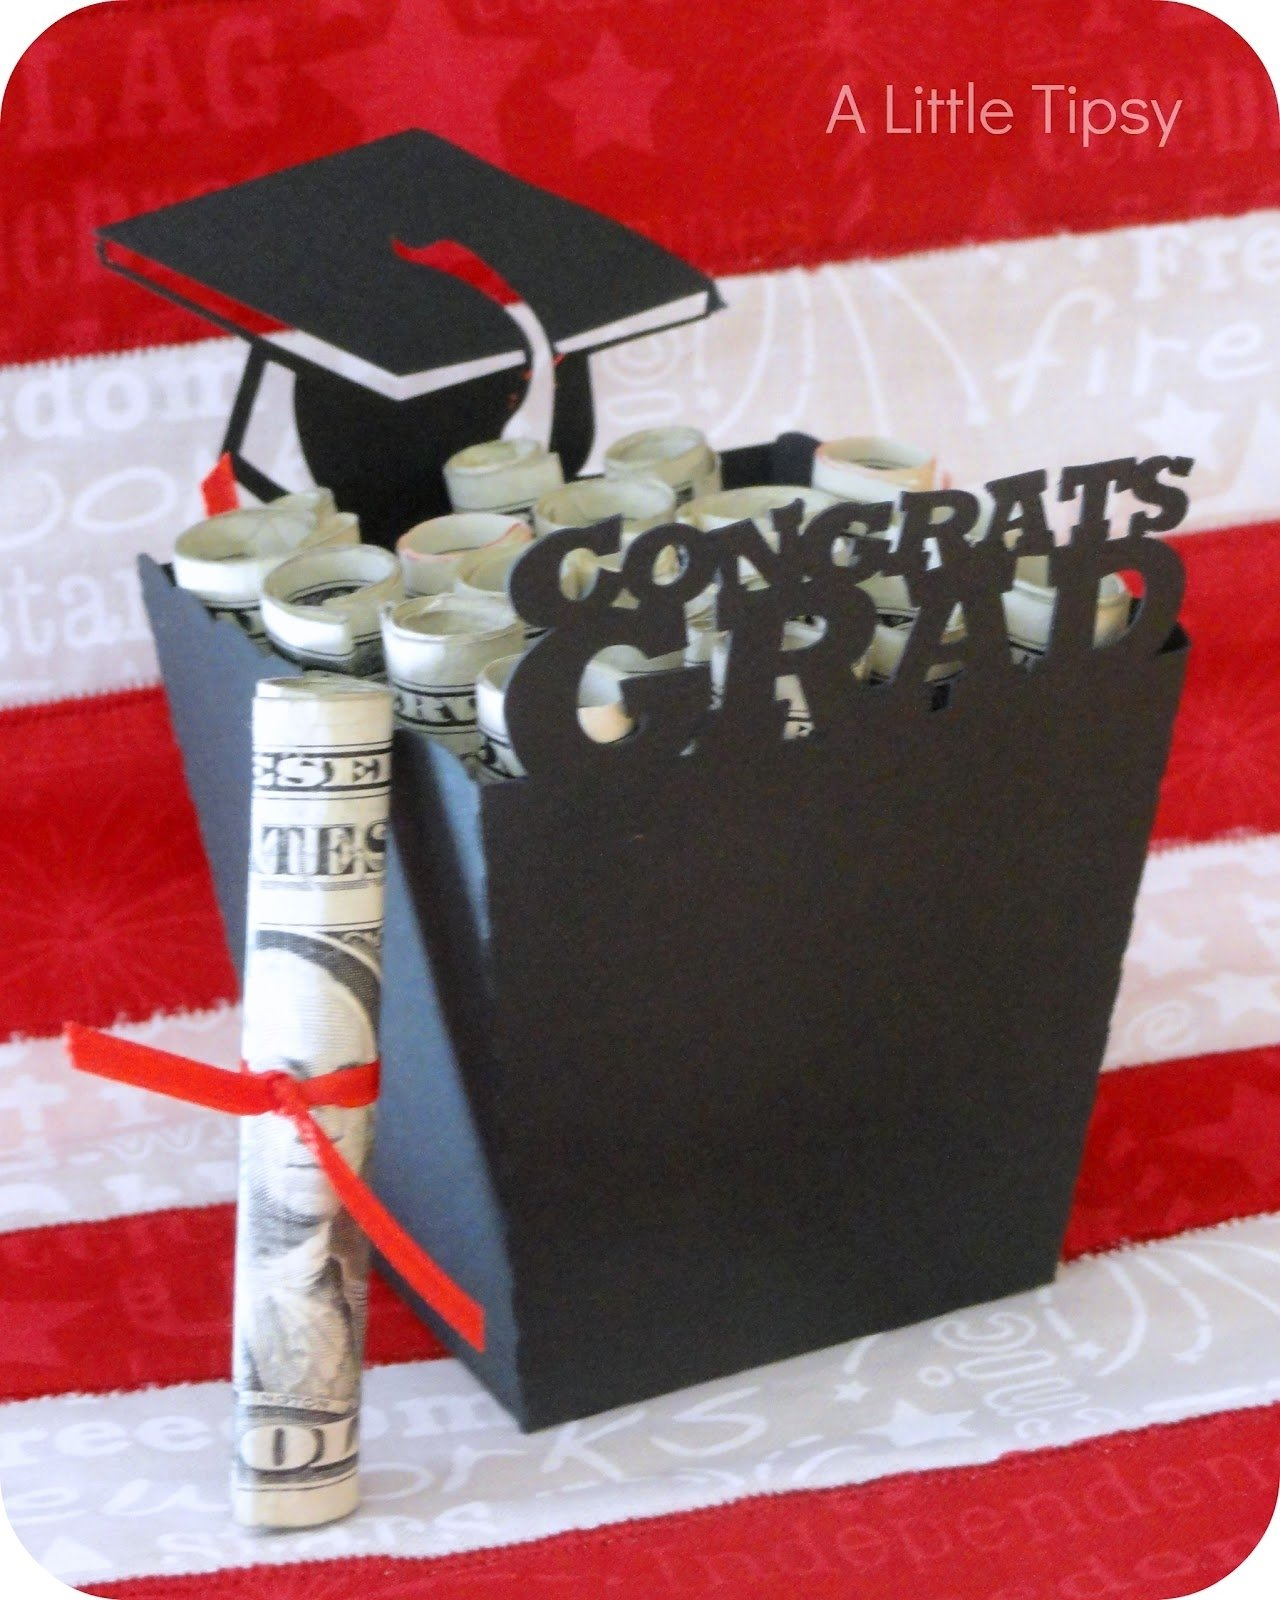 10 Attractive Graduation Gifts Ideas For Her last minute graduation gift graduation gifts gift and graduation 1 2020